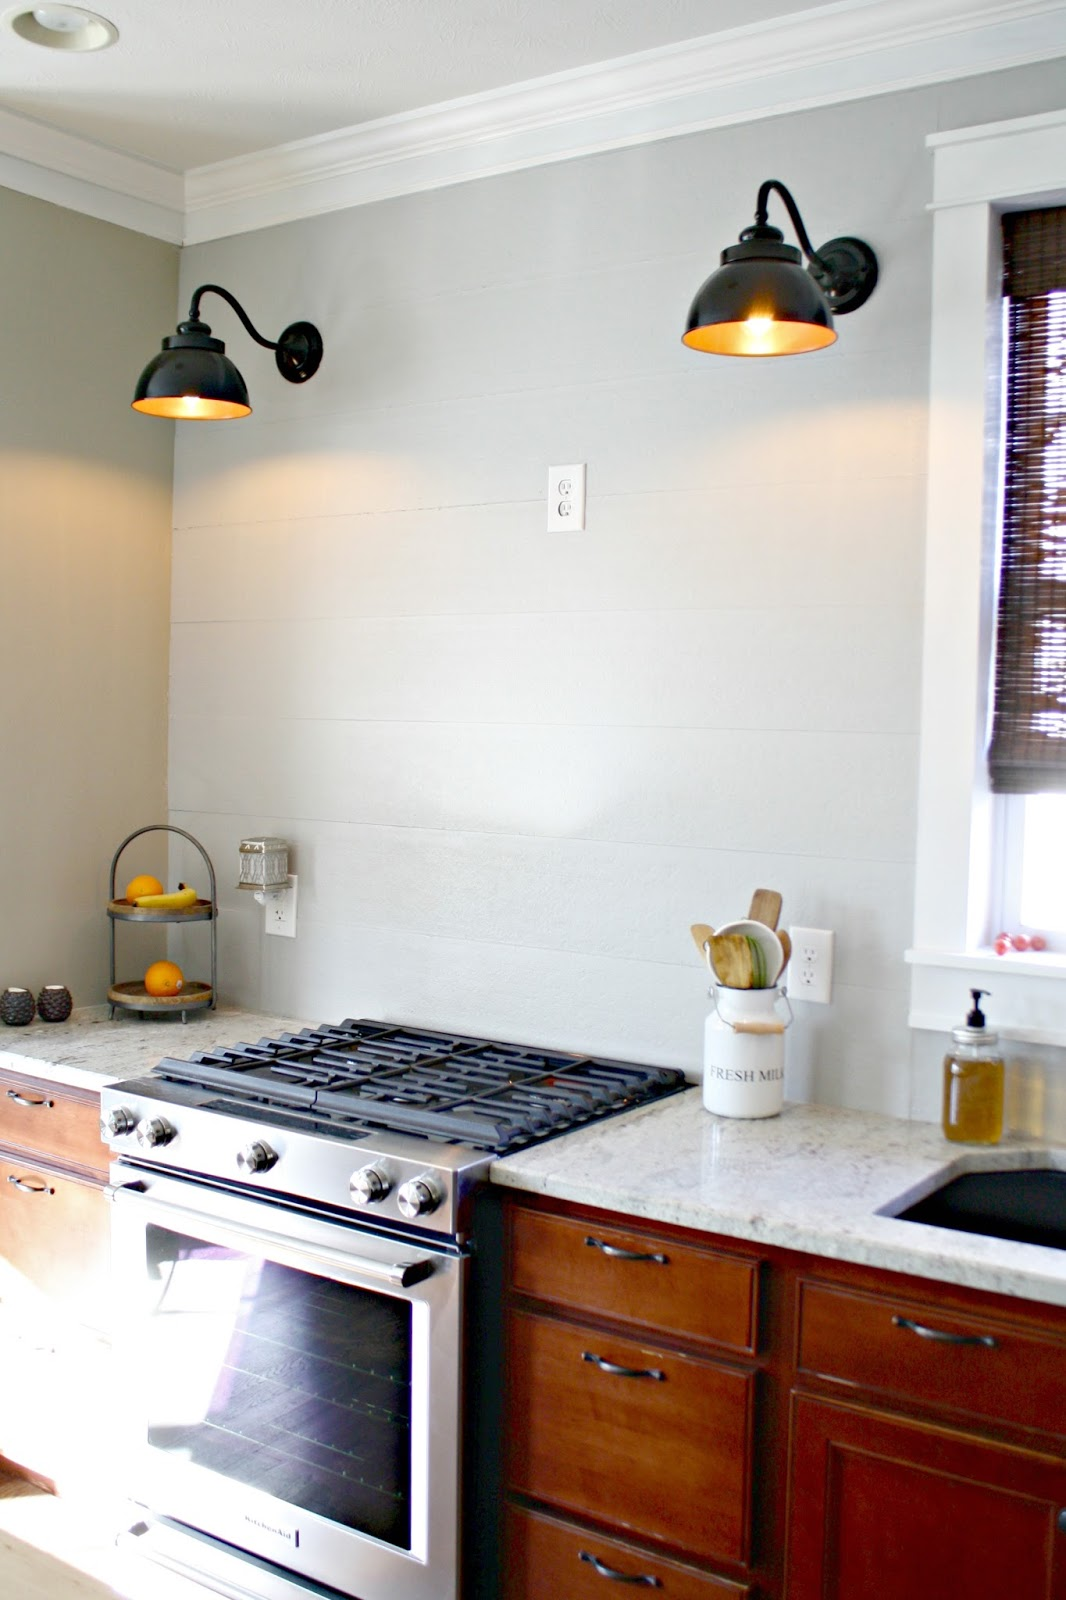 How To Install A Cement Board Planked Wall From Thrifty